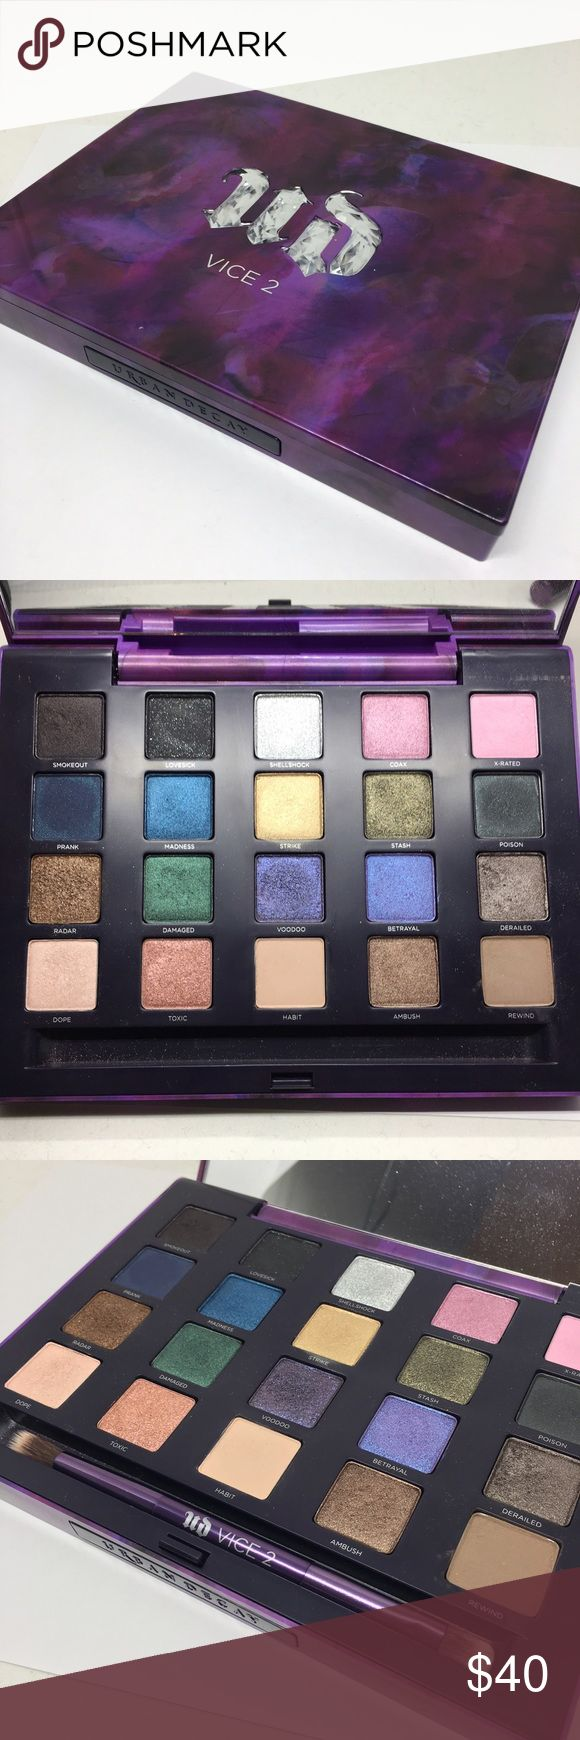 Urban Decay UD Vice 2 Palette Barely used and in great shape! Brush included Urban Decay Makeup Eyeshadow